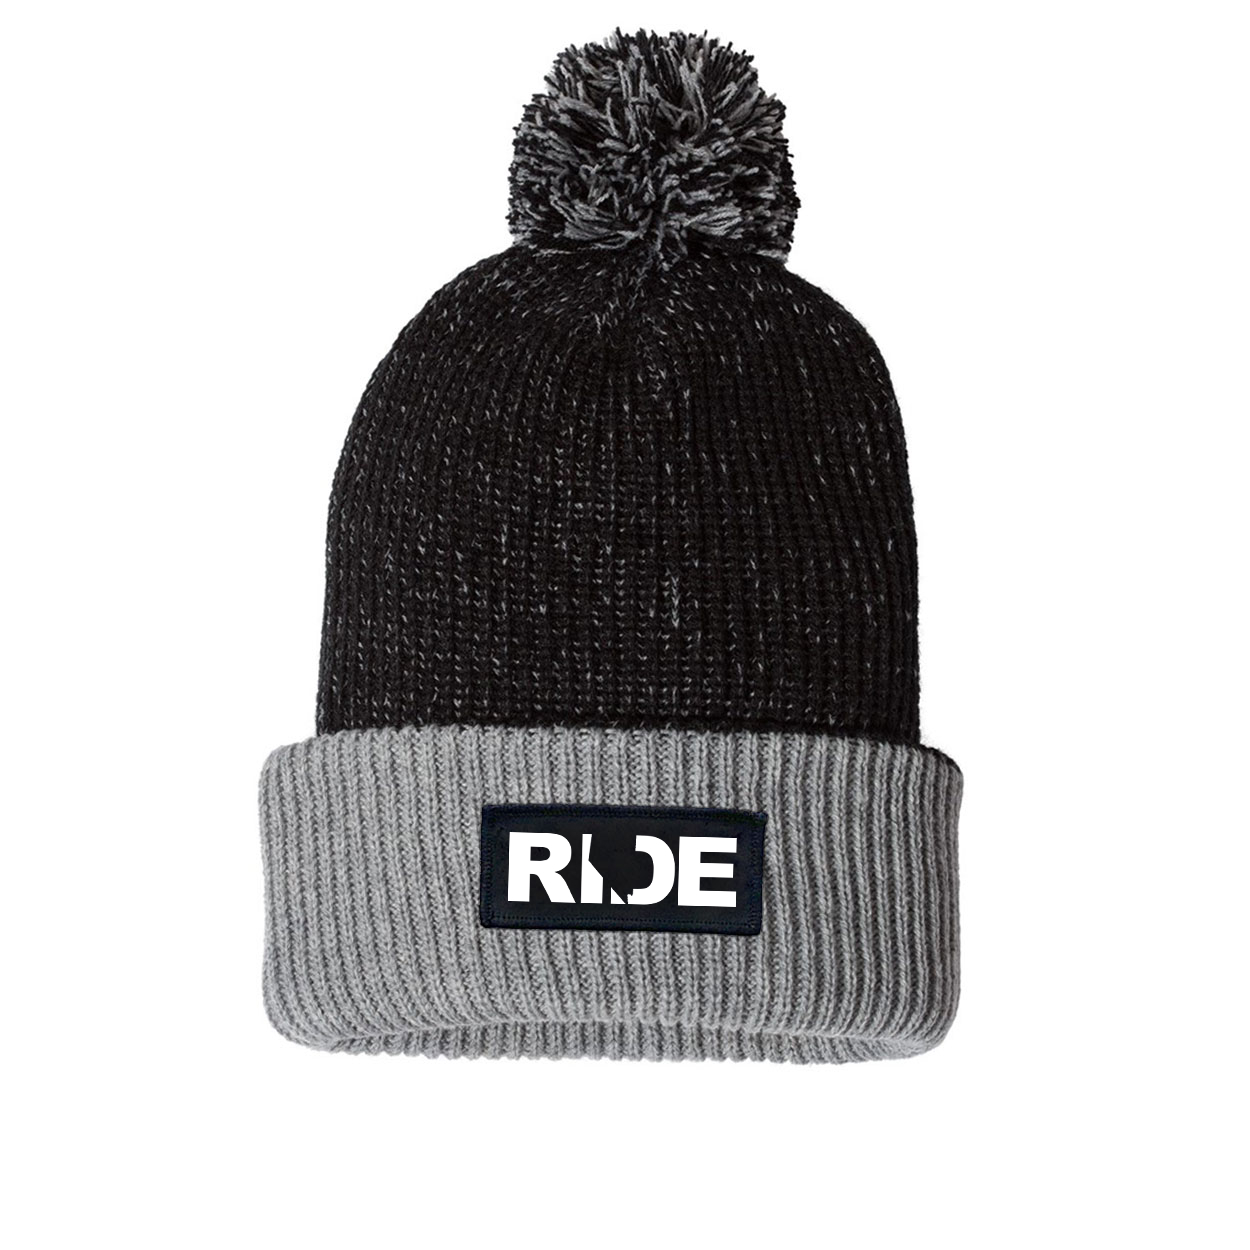 Ride Nevada Night Out Woven Patch Roll Up Pom Knit Beanie Black/Gray (White Logo)